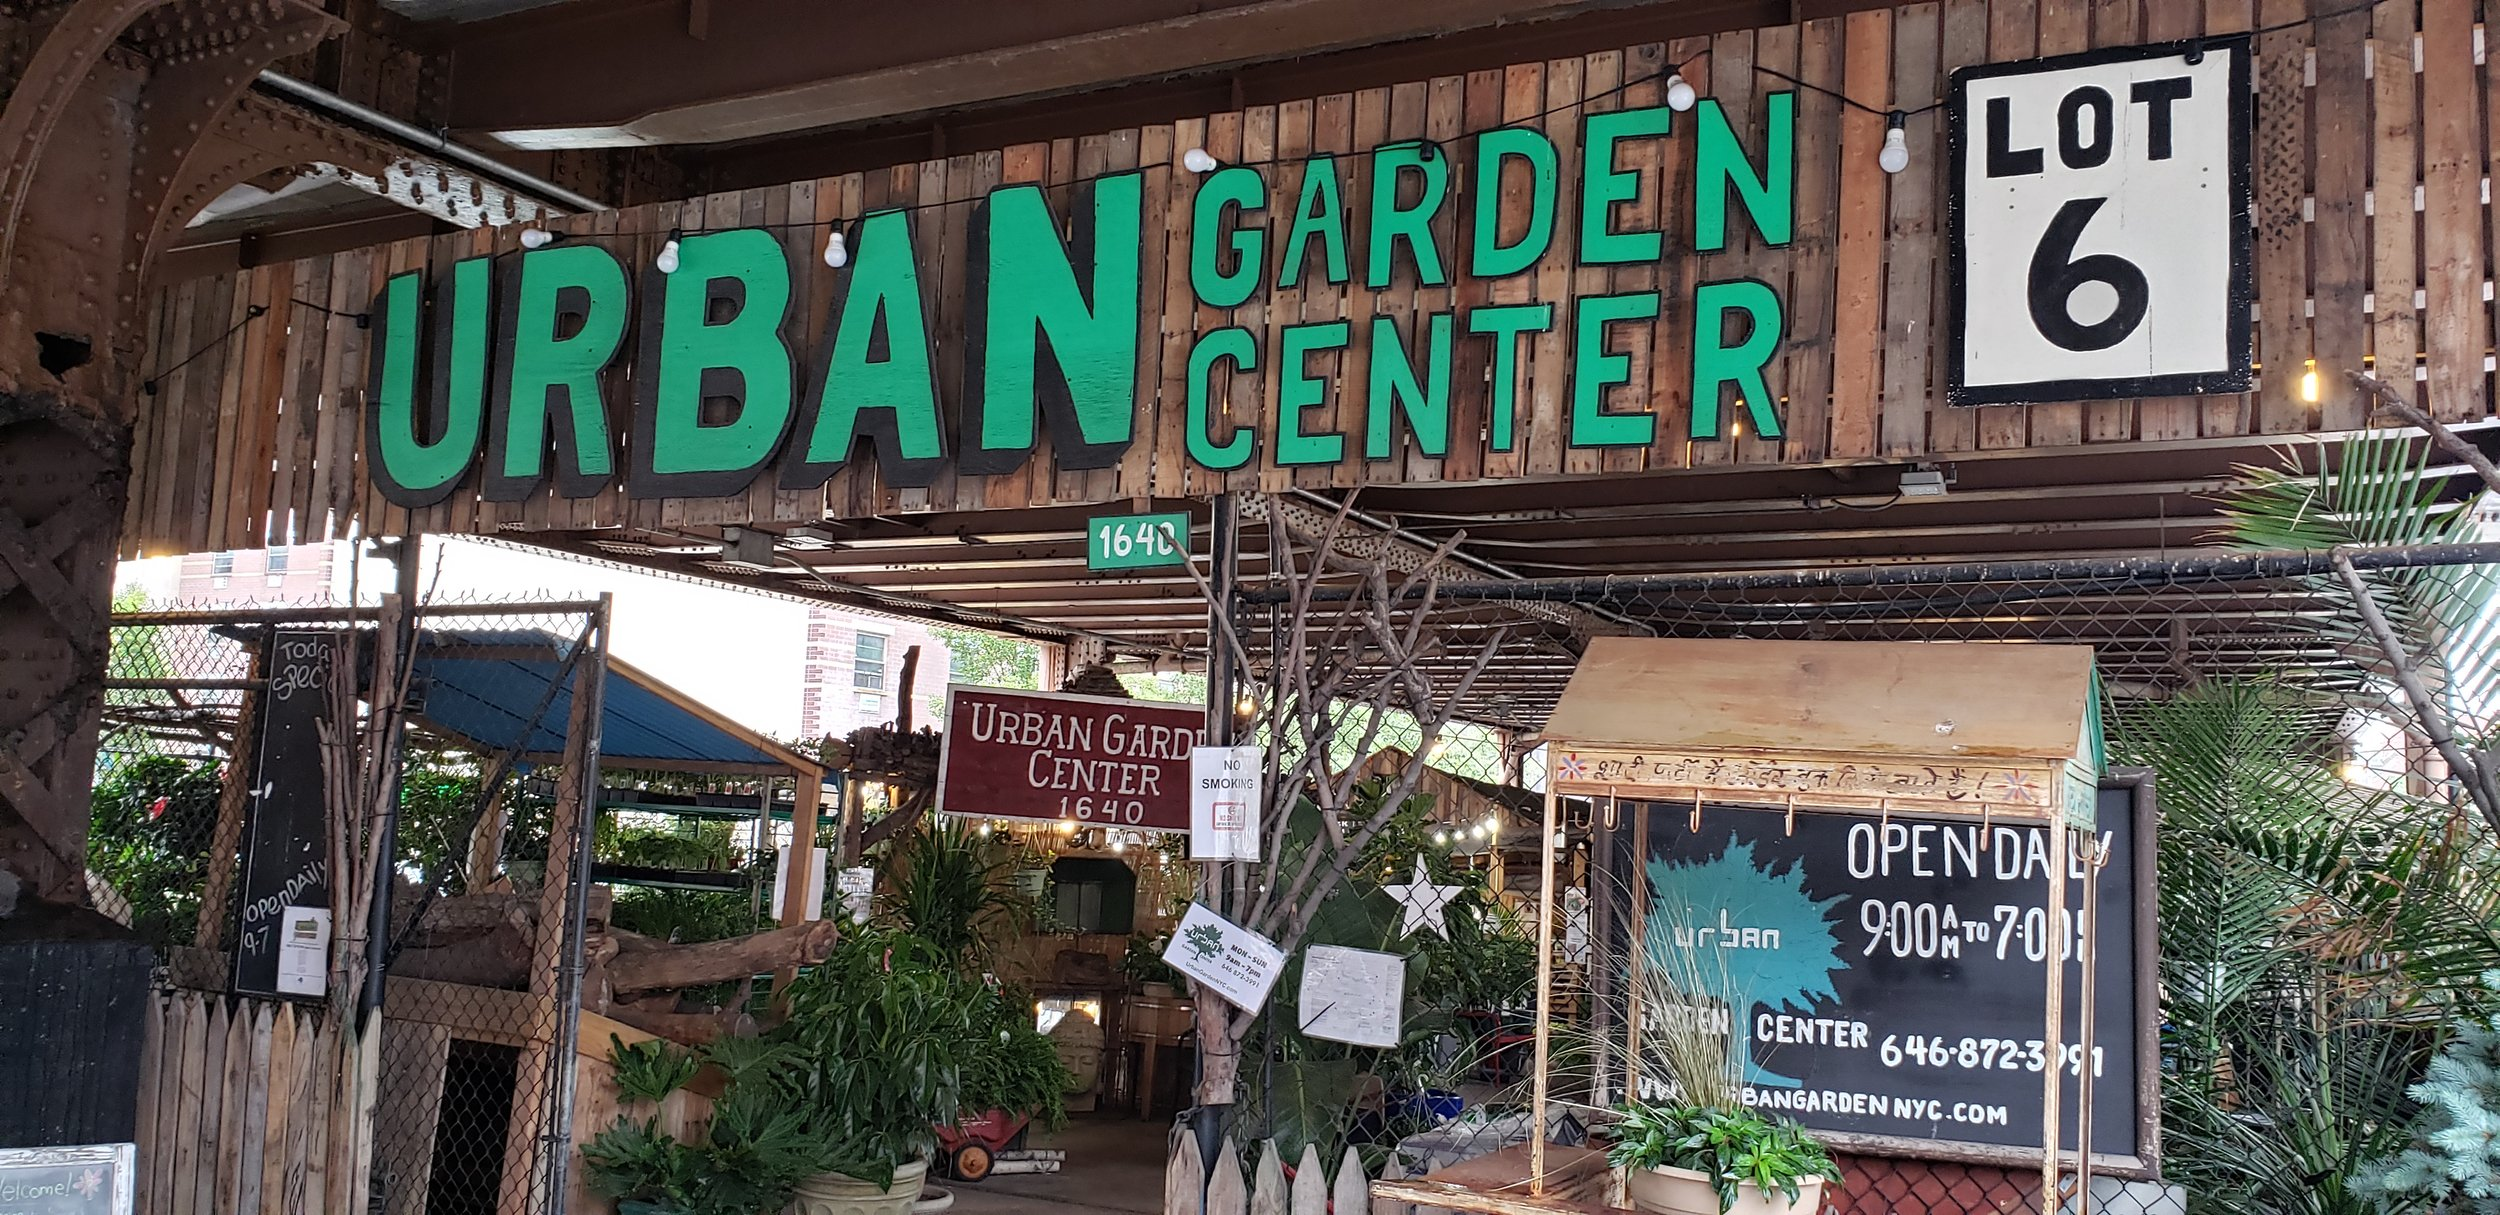 "Entrance to the store ""Urban Garden Center"" The store's name is in large green block letters on a wooden frame with the word ""Urban"" being the largest. In the background can be seen plants and garden supplies such as fencing as well as signs denoting the stores hours and sales."